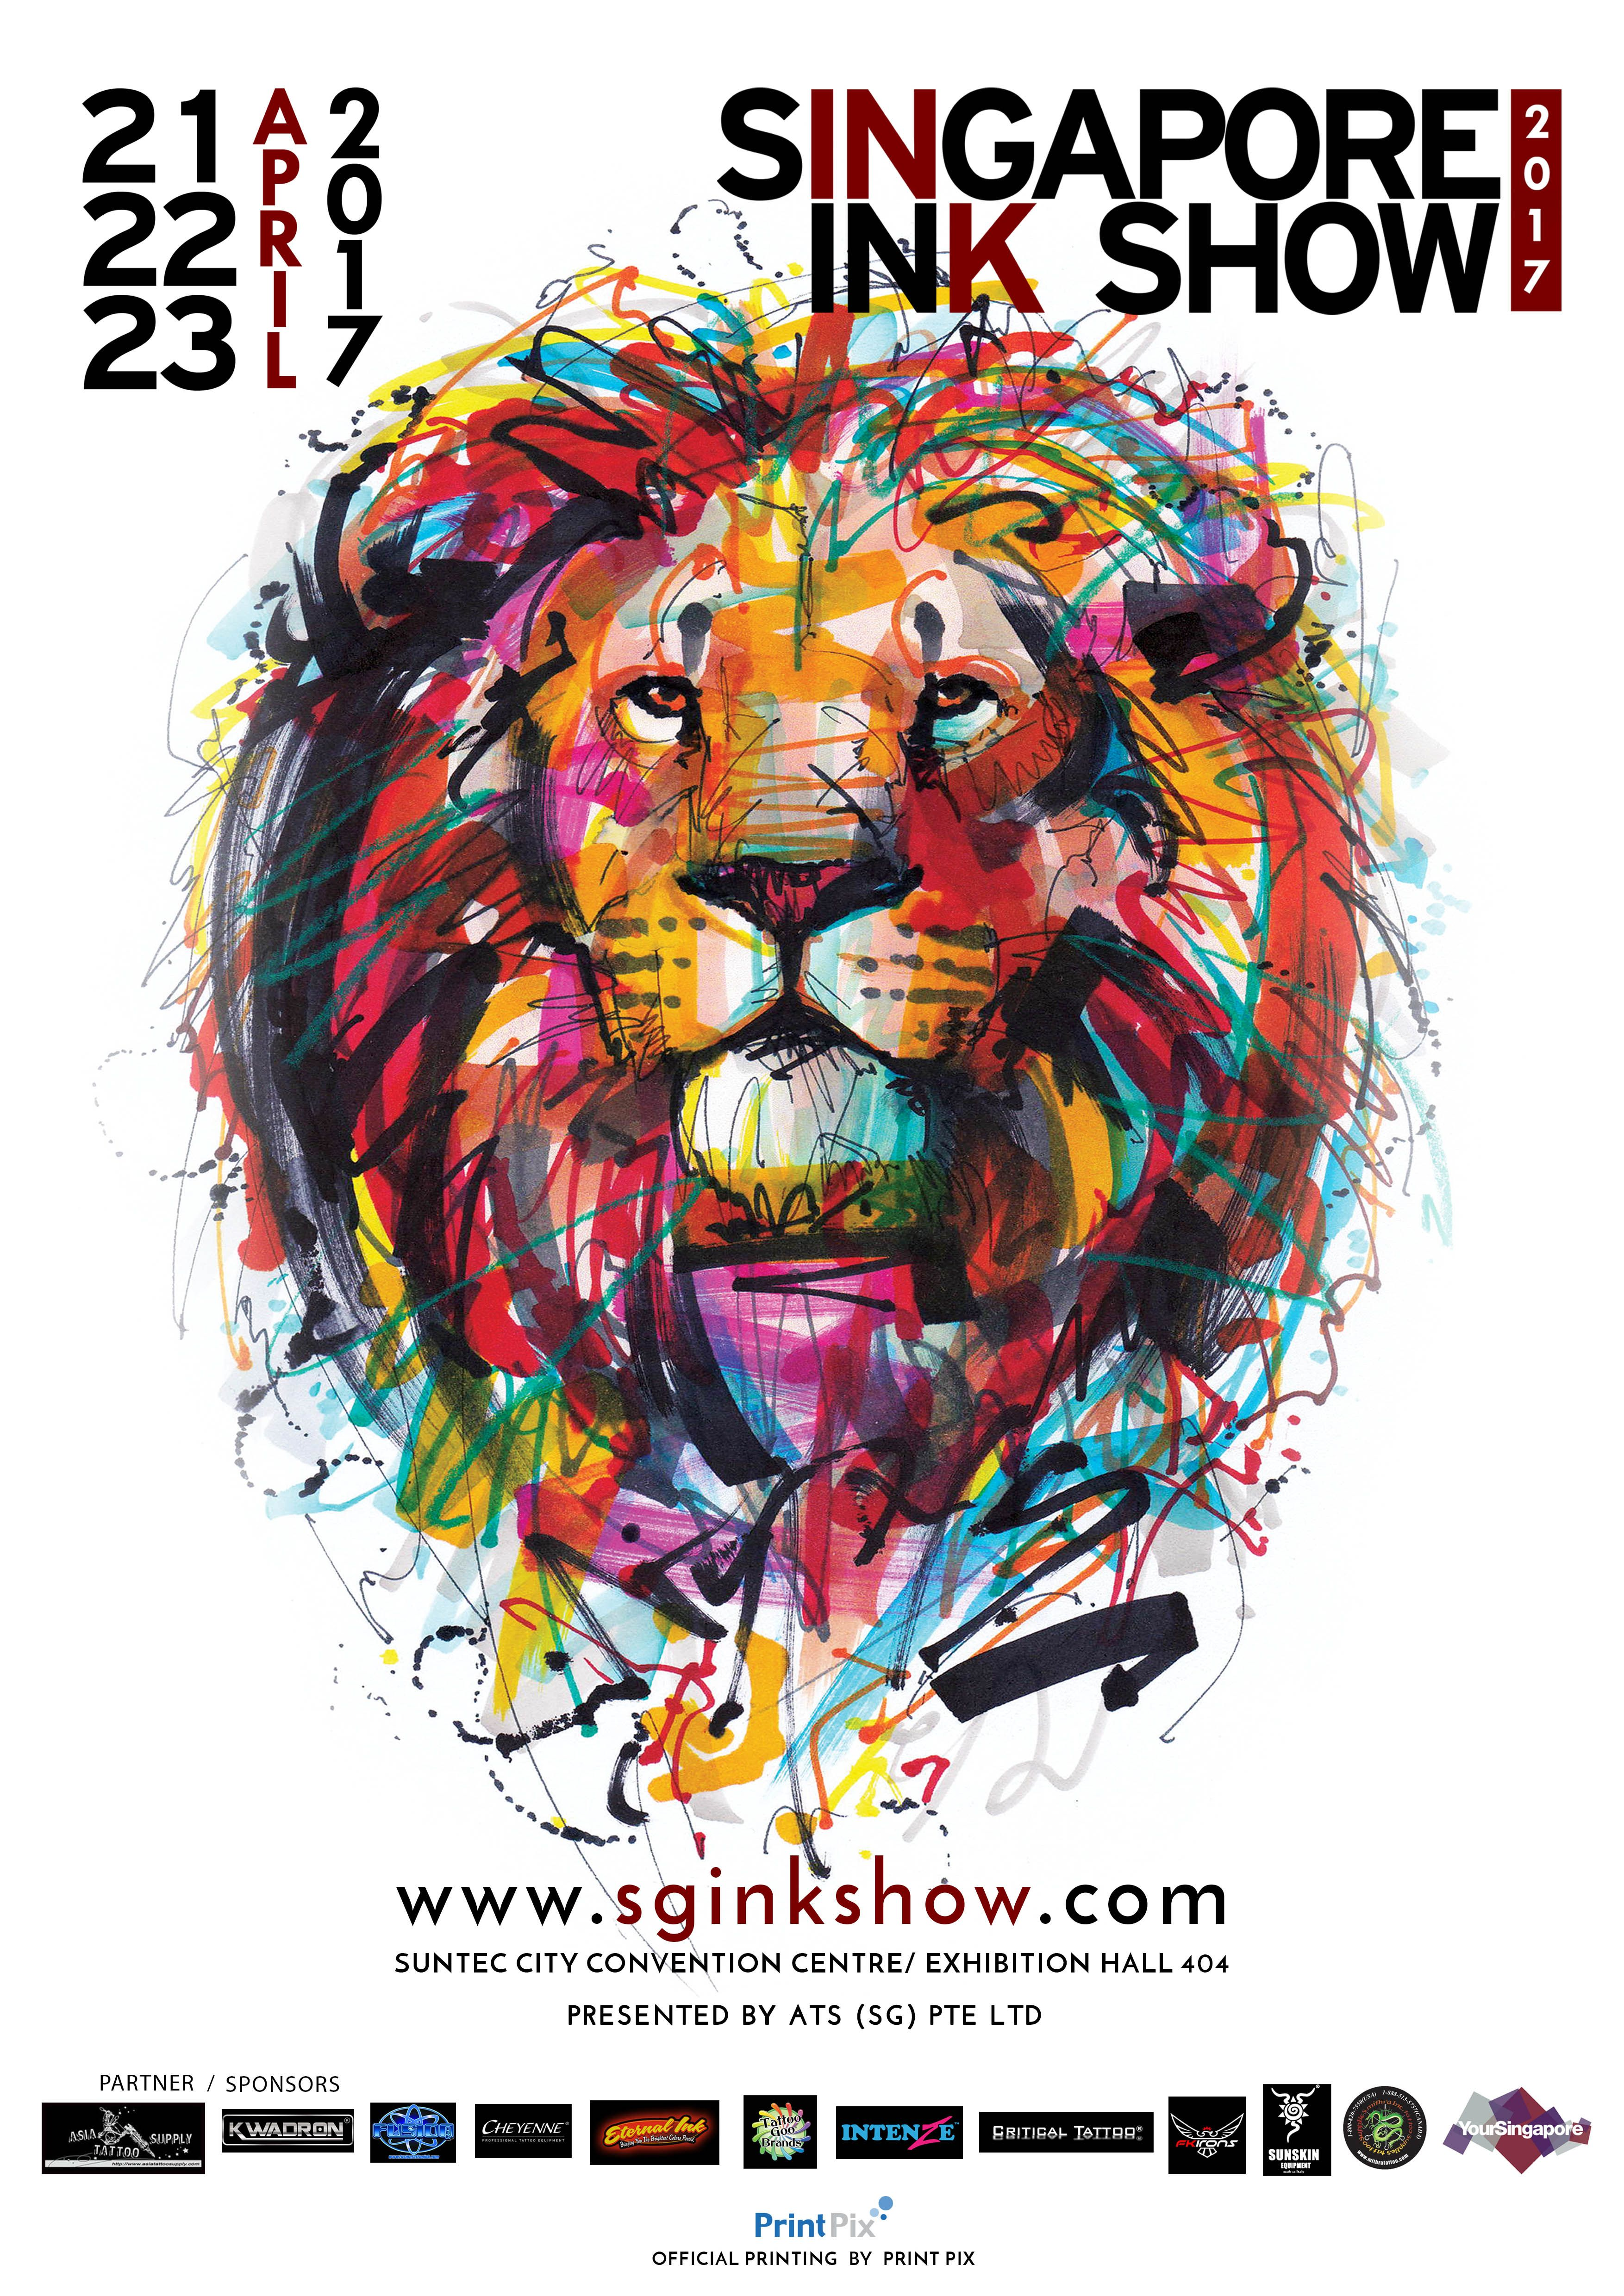 The Singapore Ink Show is the largest gathering of